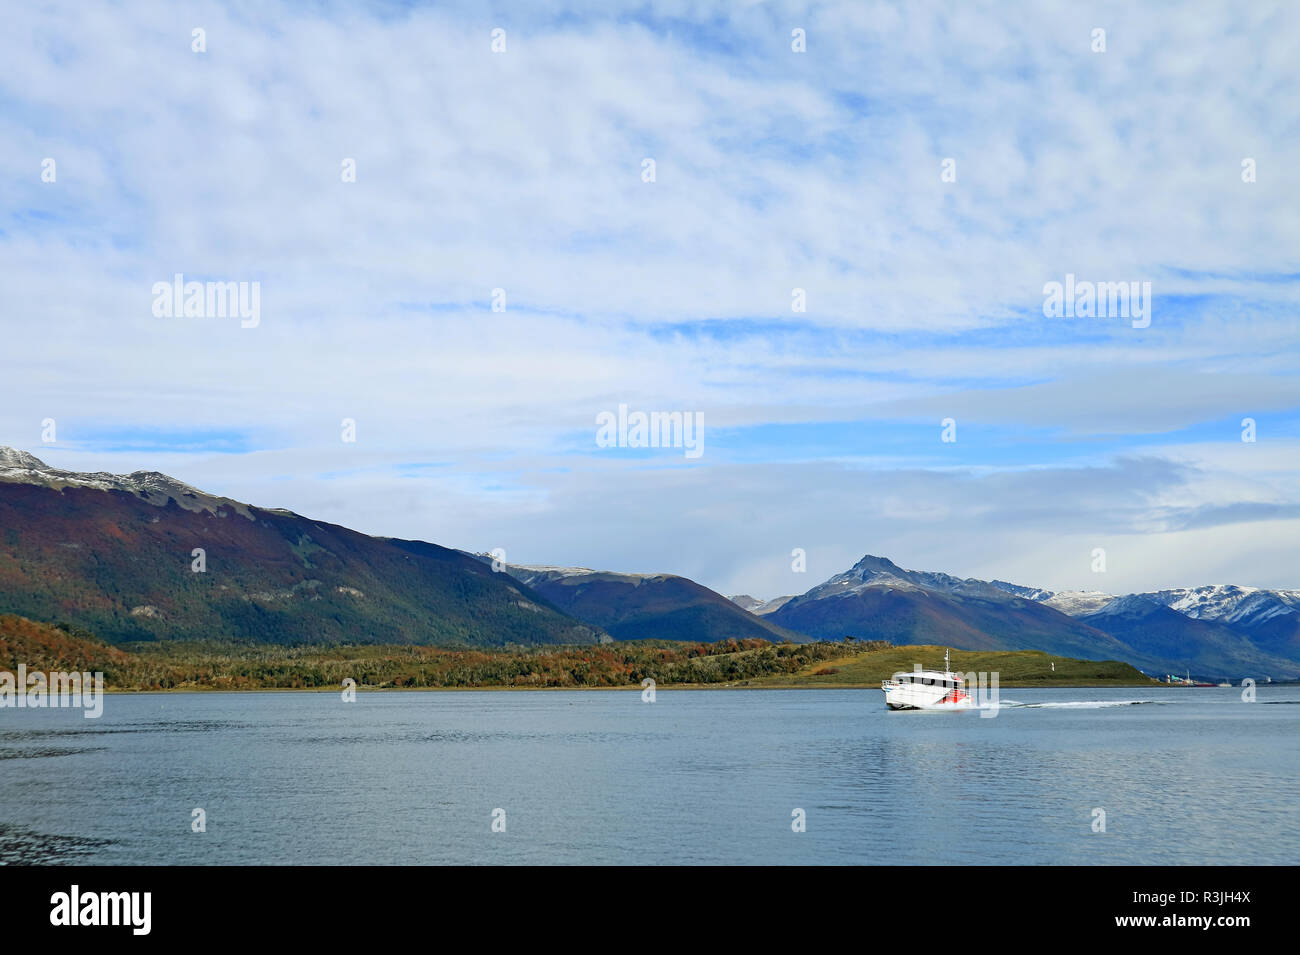 White cruise ship cruising the Beagle channel in early autumn, Ushuaia, Tierra del Fuego, Argentina - Stock Image